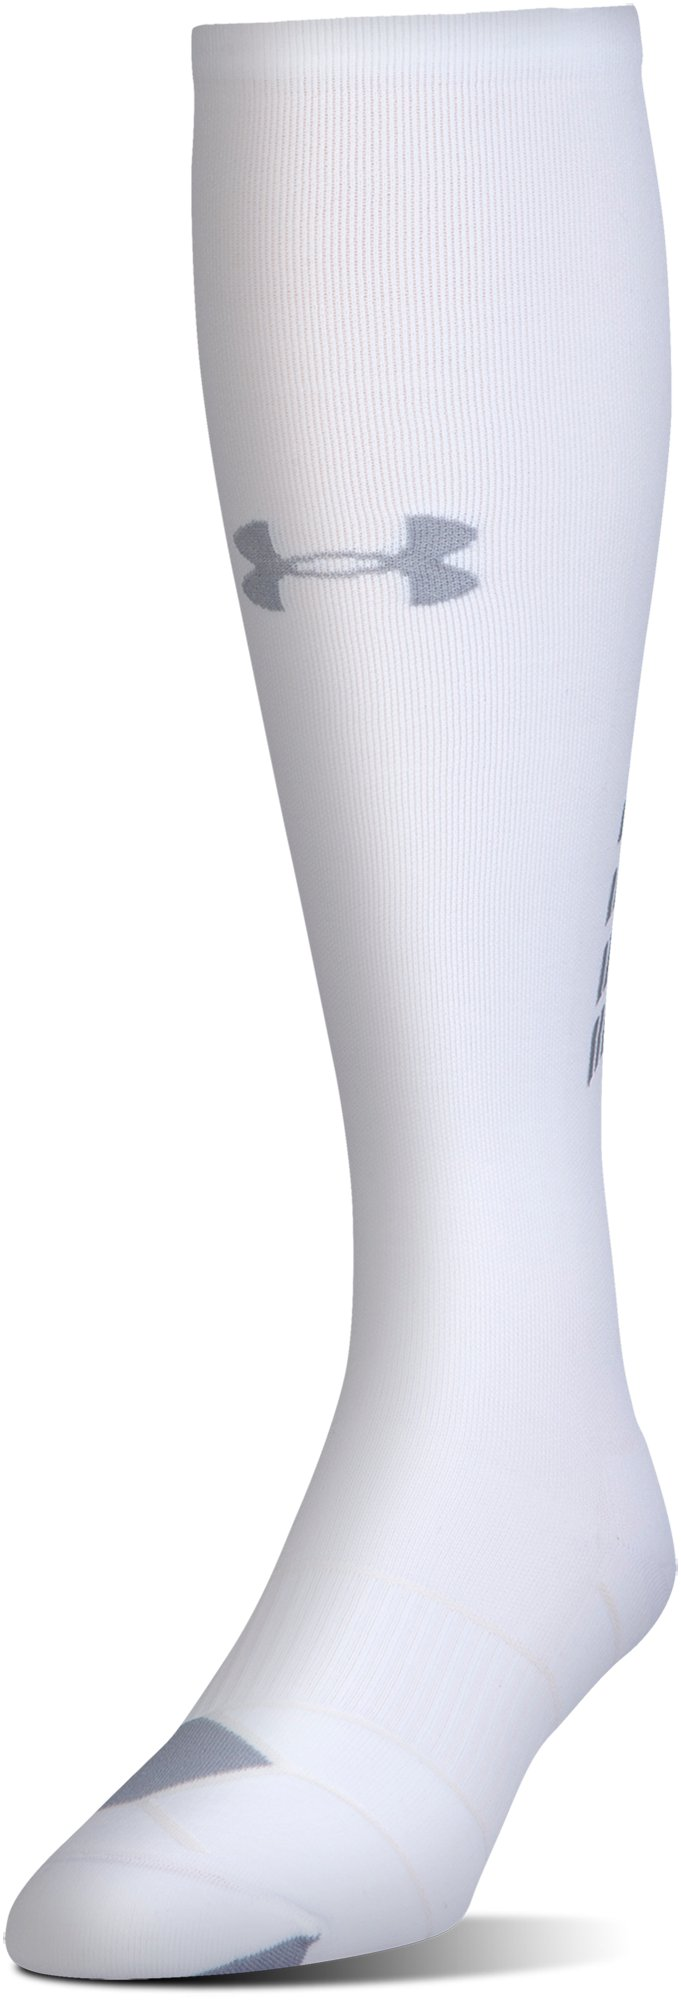 Men's UA Reflective Over-The-Calf Socks, White, undefined